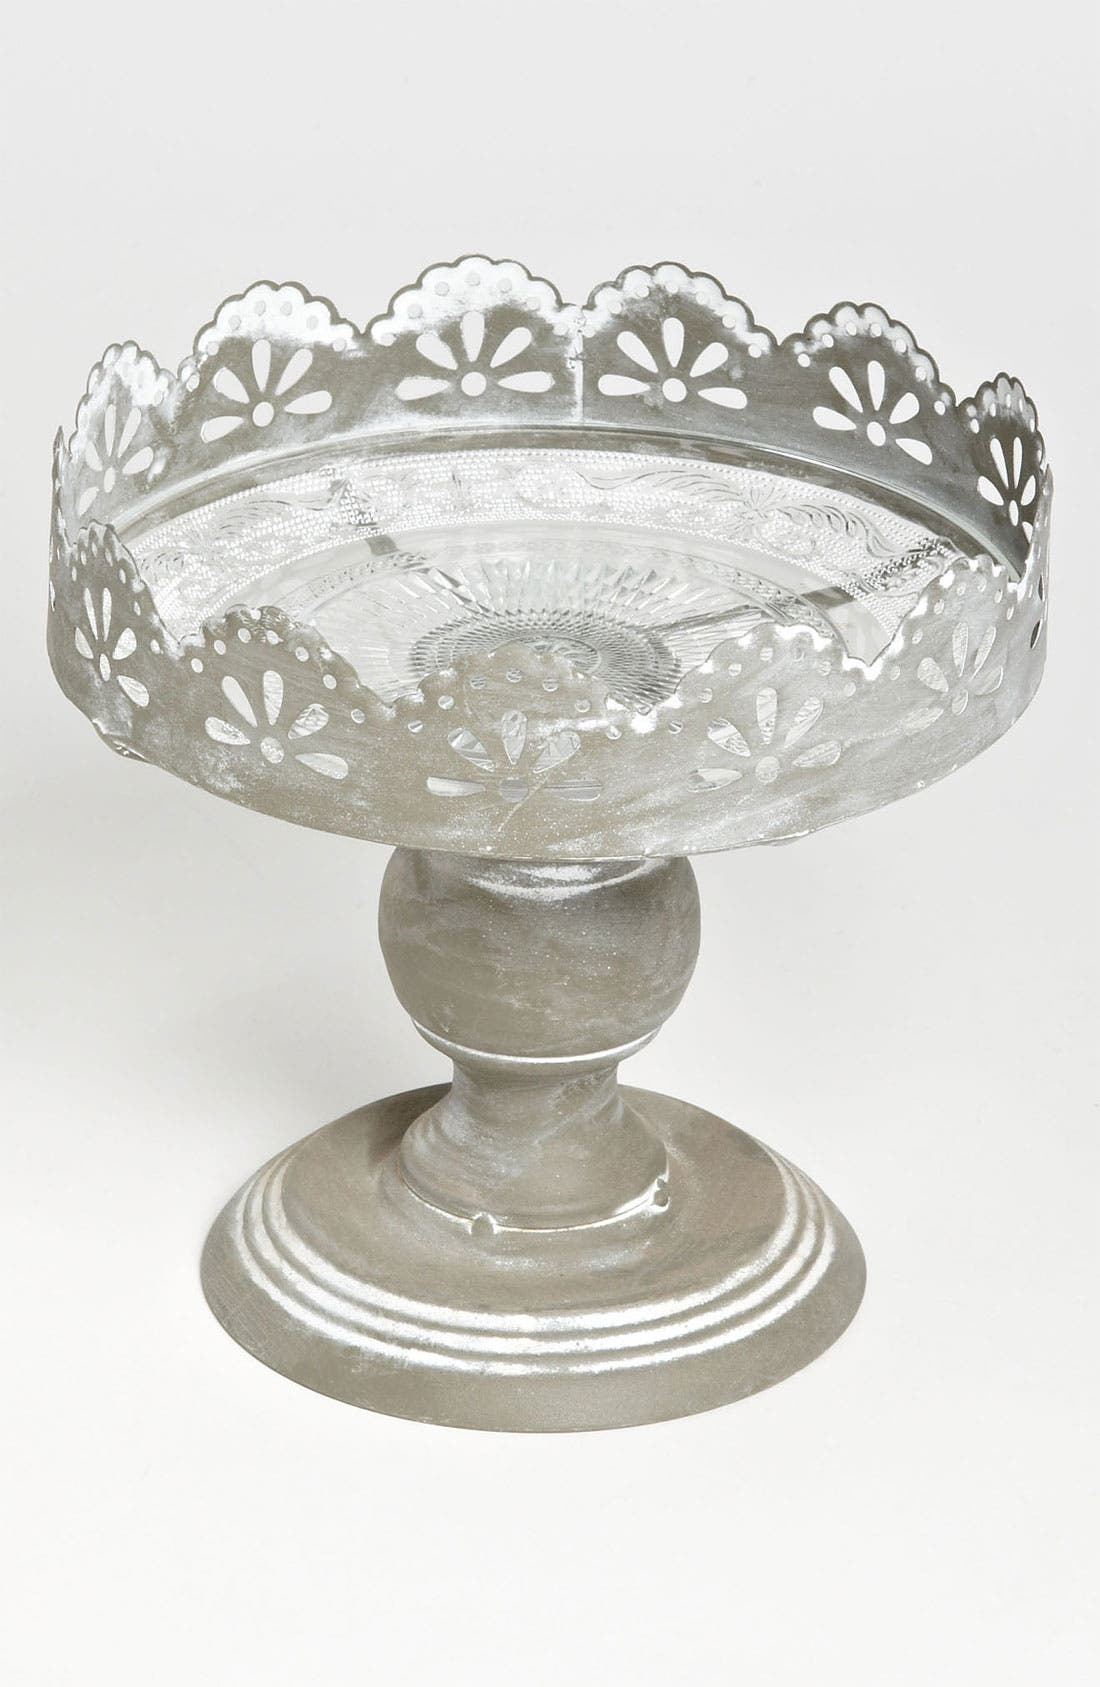 Alternate Image 1 Selected - Metal & Glass Pedestal Plate, Small